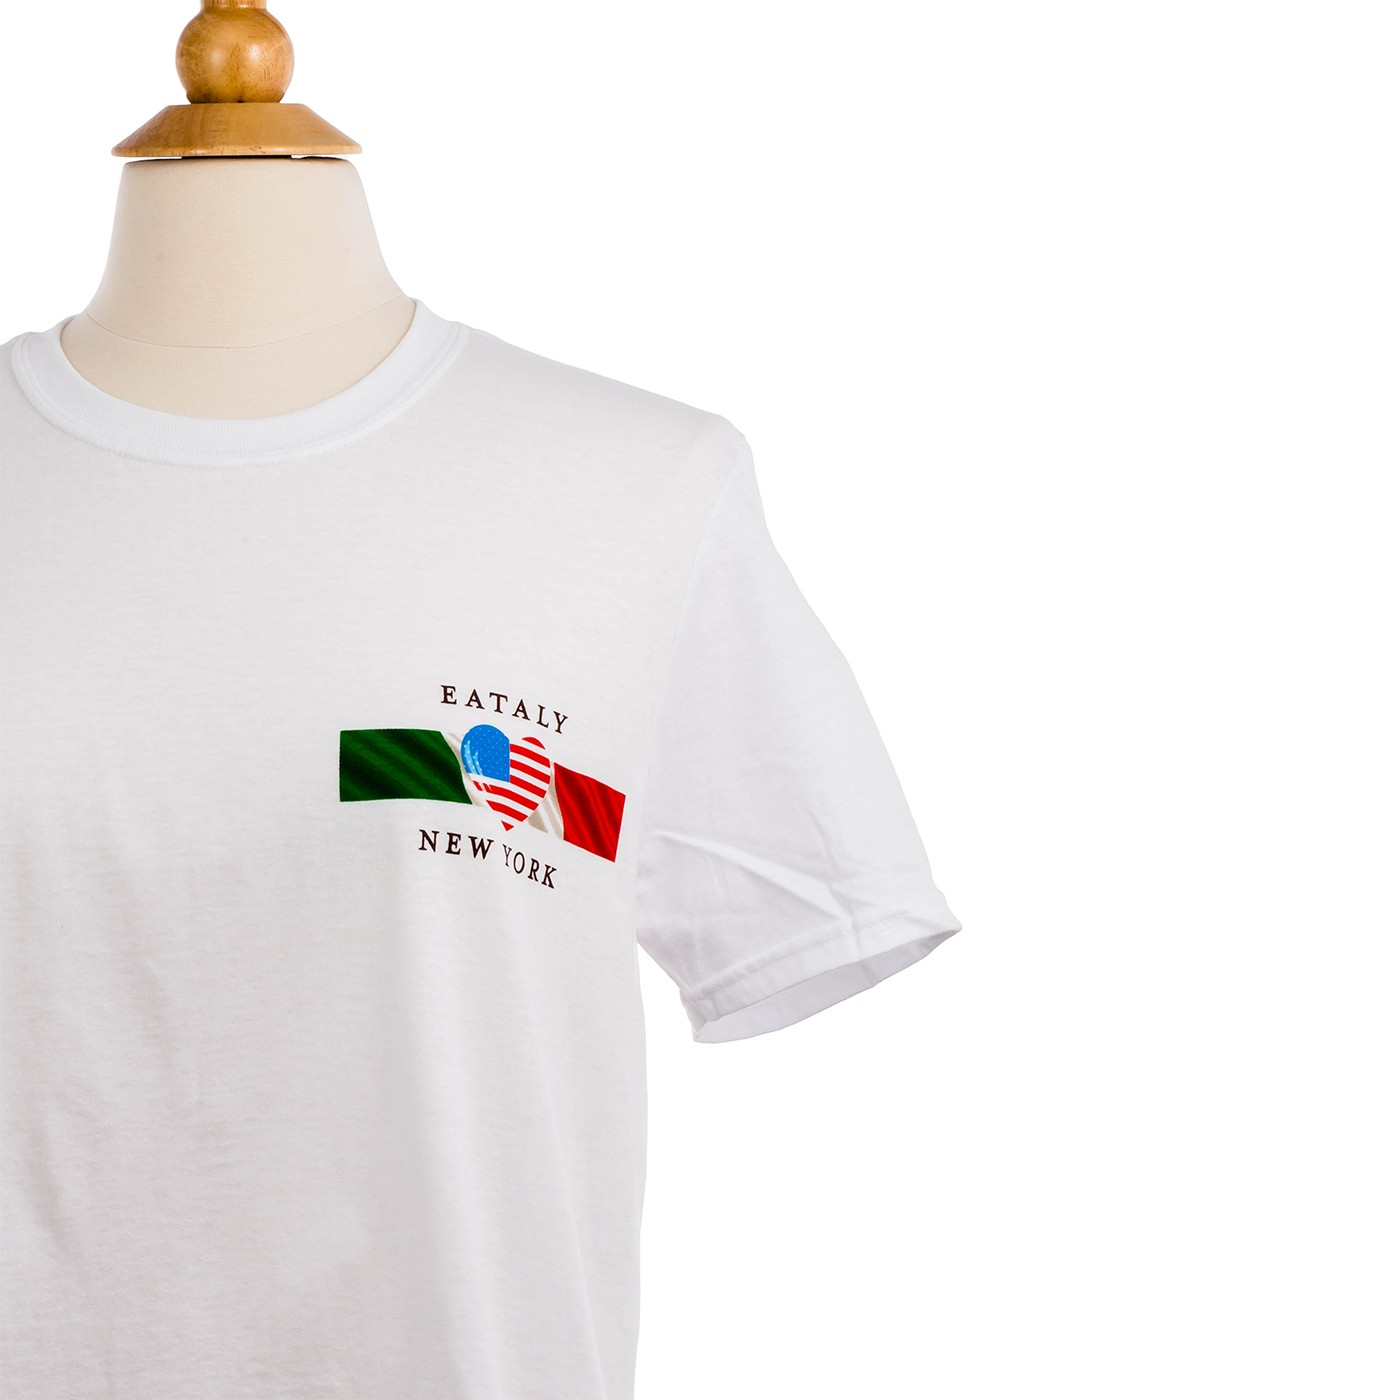 Italy is Eataly T-shirt - Medium